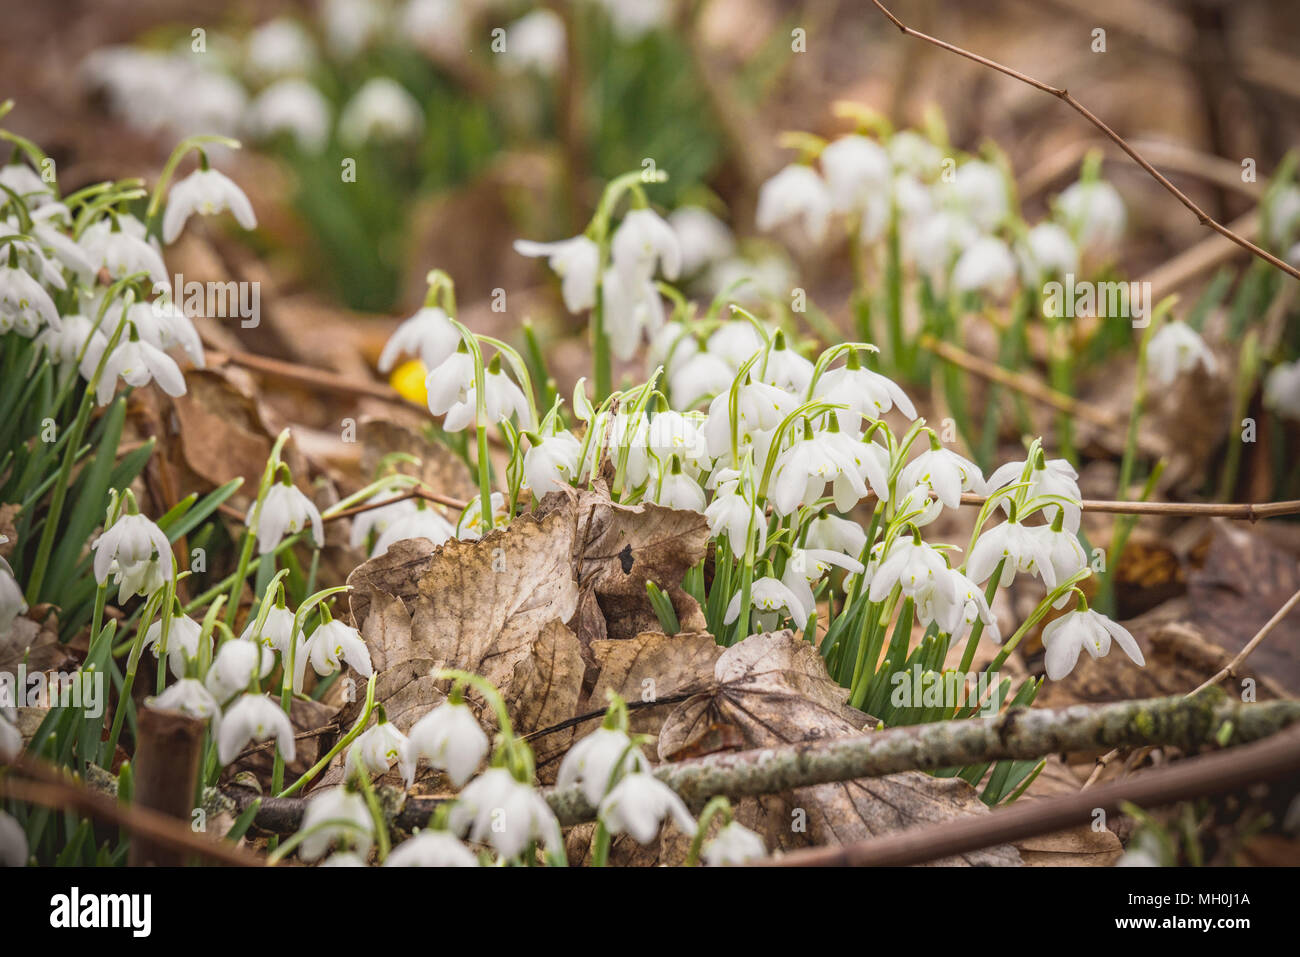 White snowdrop flowers growing in a forest with fallen leaves on the fround - Stock Image